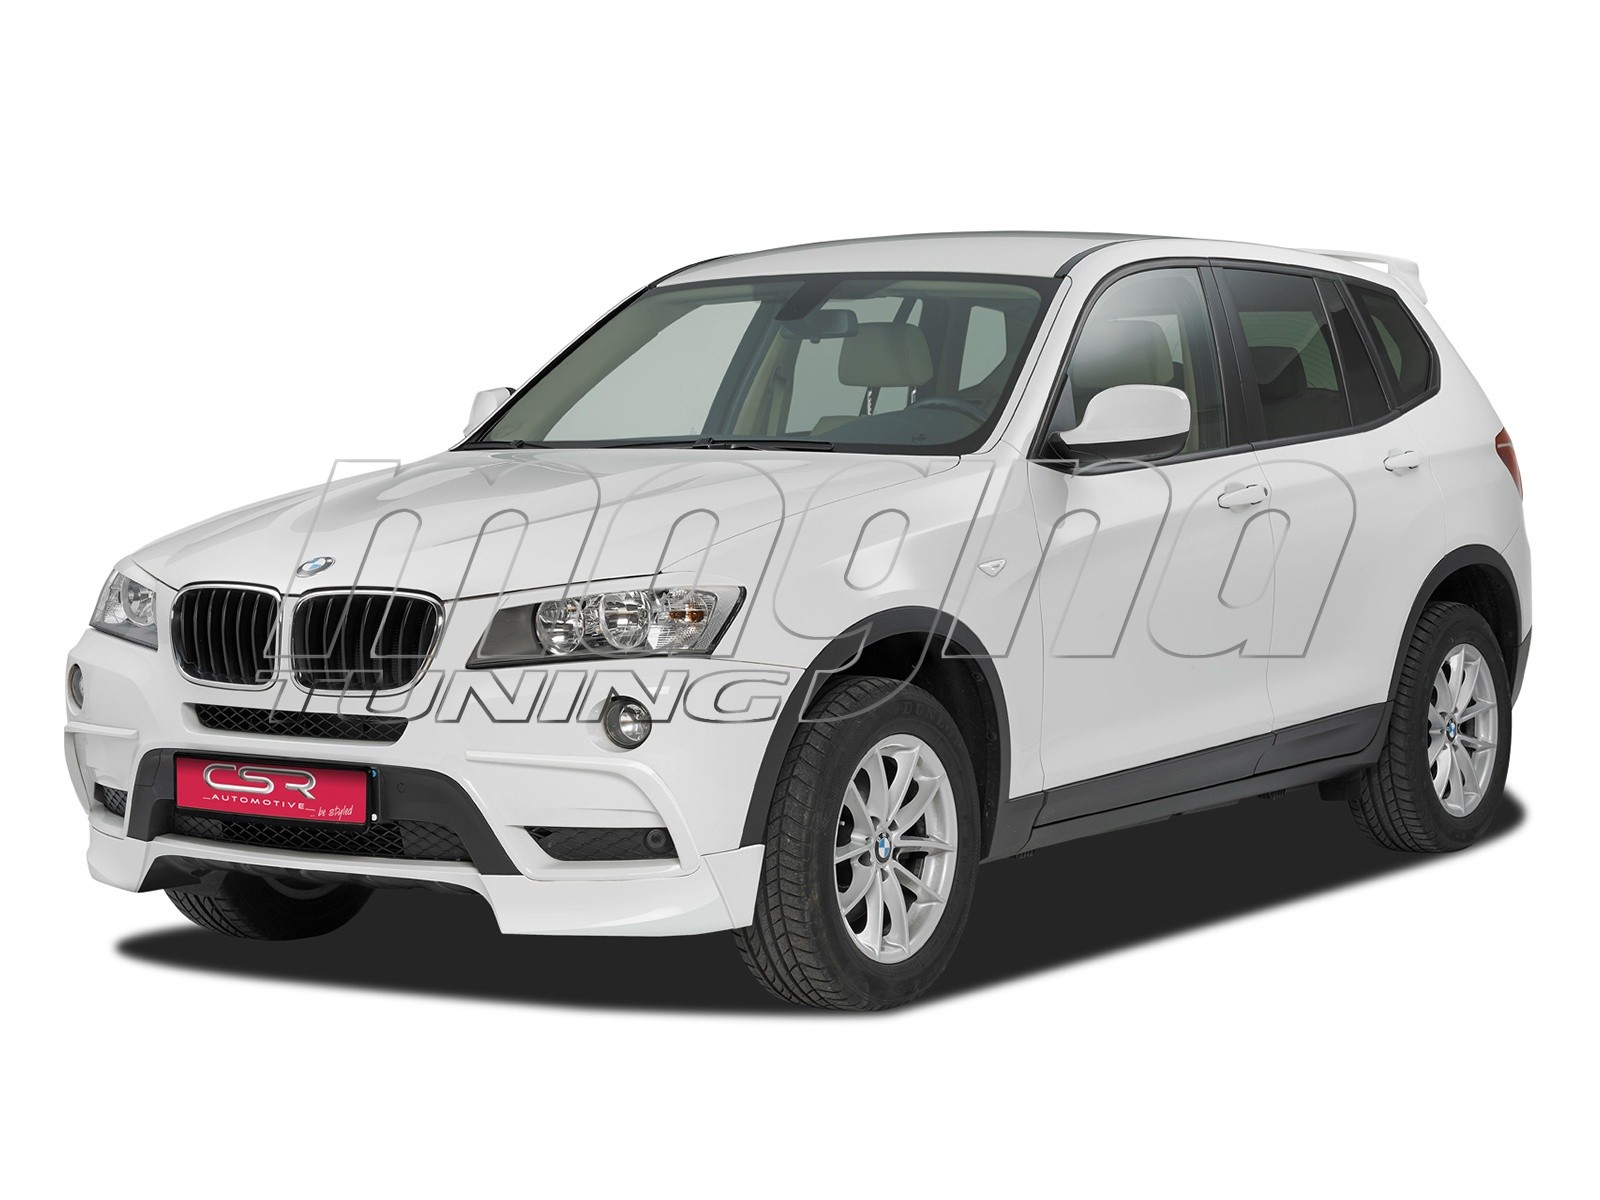 bmw x3 f25 cx body kit. Black Bedroom Furniture Sets. Home Design Ideas